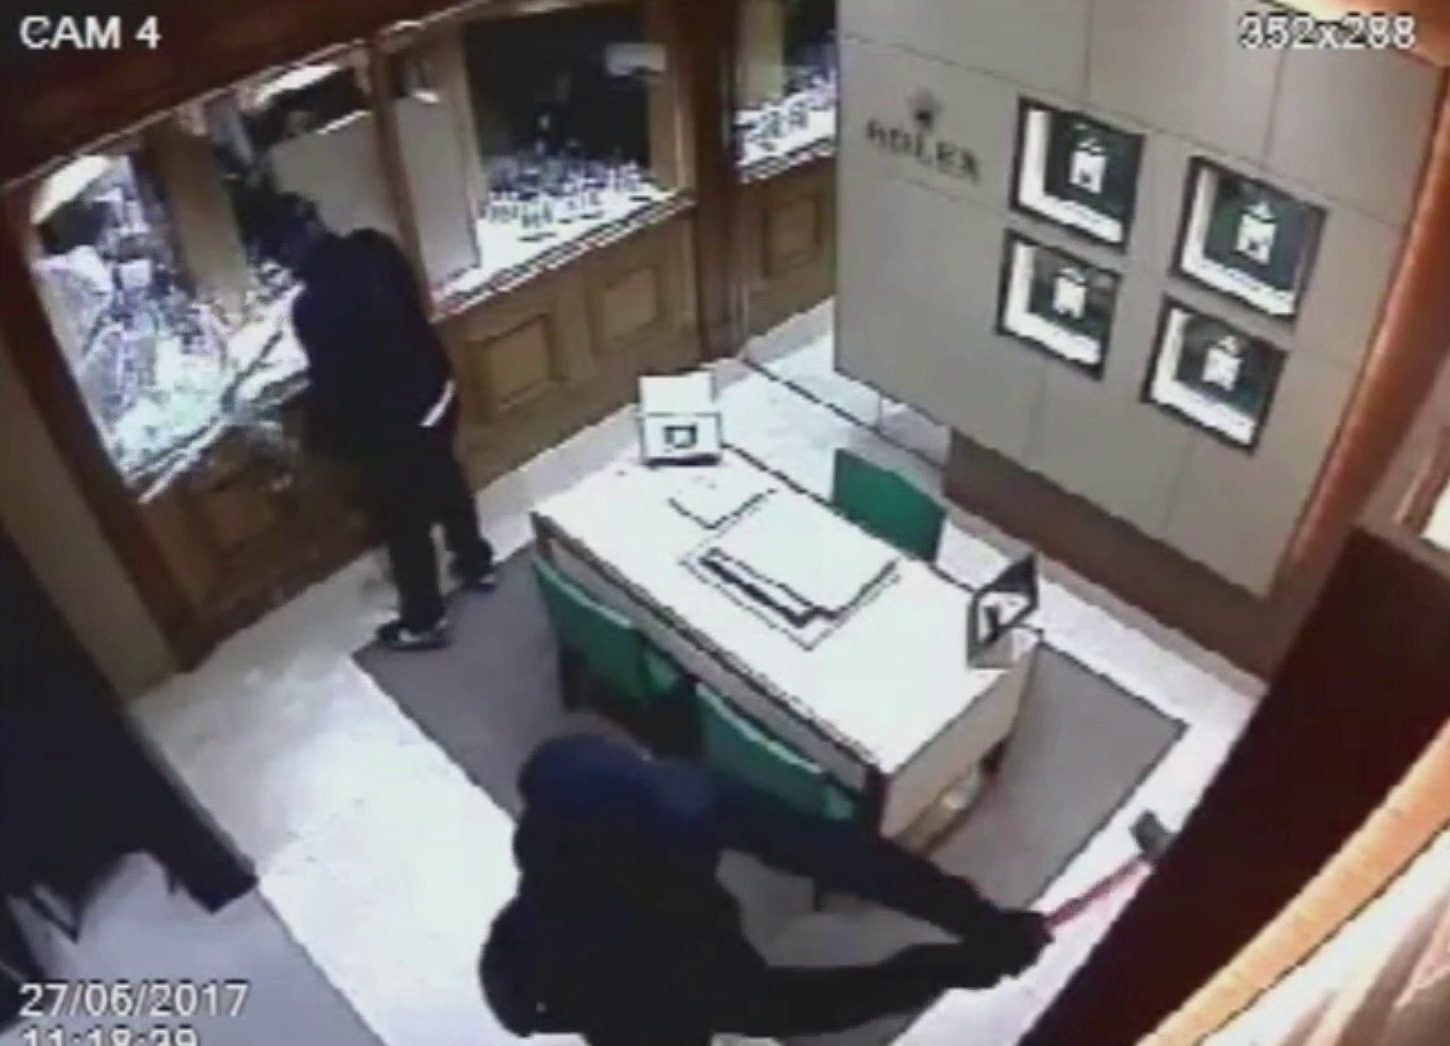 """CCTV footage from inside the Mappin and Webb jewellers at Gleneagles Hotel during the armed robbery. A man has been convicted of a ?500,000 armed jewellery heist at Gleneagles Hotel. Richard Fleming, 42, used hammers, a pistol and a machete during the raid last June. A jury at the High Court in Edinburgh found Fleming, from London, guilty of assault and armed robbery at the five-star Perthshire resort. Another man - Liam Richardson, 30, admitted his involvement in the robbery at an earlier hearing. Fleming and Richardson were part of a three-man team that stole 50 Rolex watches from the Mappin & Webb boutique at the luxury hotel. Jurors heard staff members say that the trio were dressed in black. Fleming personally threatened employees Louis Hutchison, 48, and Euan Wishart, 36, with a gun, a machete and hammers. After a raid that last approximately two minutes, Fleming and his accomplices escaped from the scene in a high-powered Audi sports car, which they dumped nearby. They had taken 50 out of 51 Rolex watches that were on display at the boutique. The watches had a total value of ?516,750 and have never been recovered. The robbers then drove to Glasgow in a Range Rover Evoque, which had been stolen earlier from London. It was later found burned out in a cemetery in the city's east end. After finding the car, detectives analysed """"tens of thousands of hours"""" worth of CCTV recordings and studied mobile phone records, which placed Fleming and Richardson at the crime scene."""